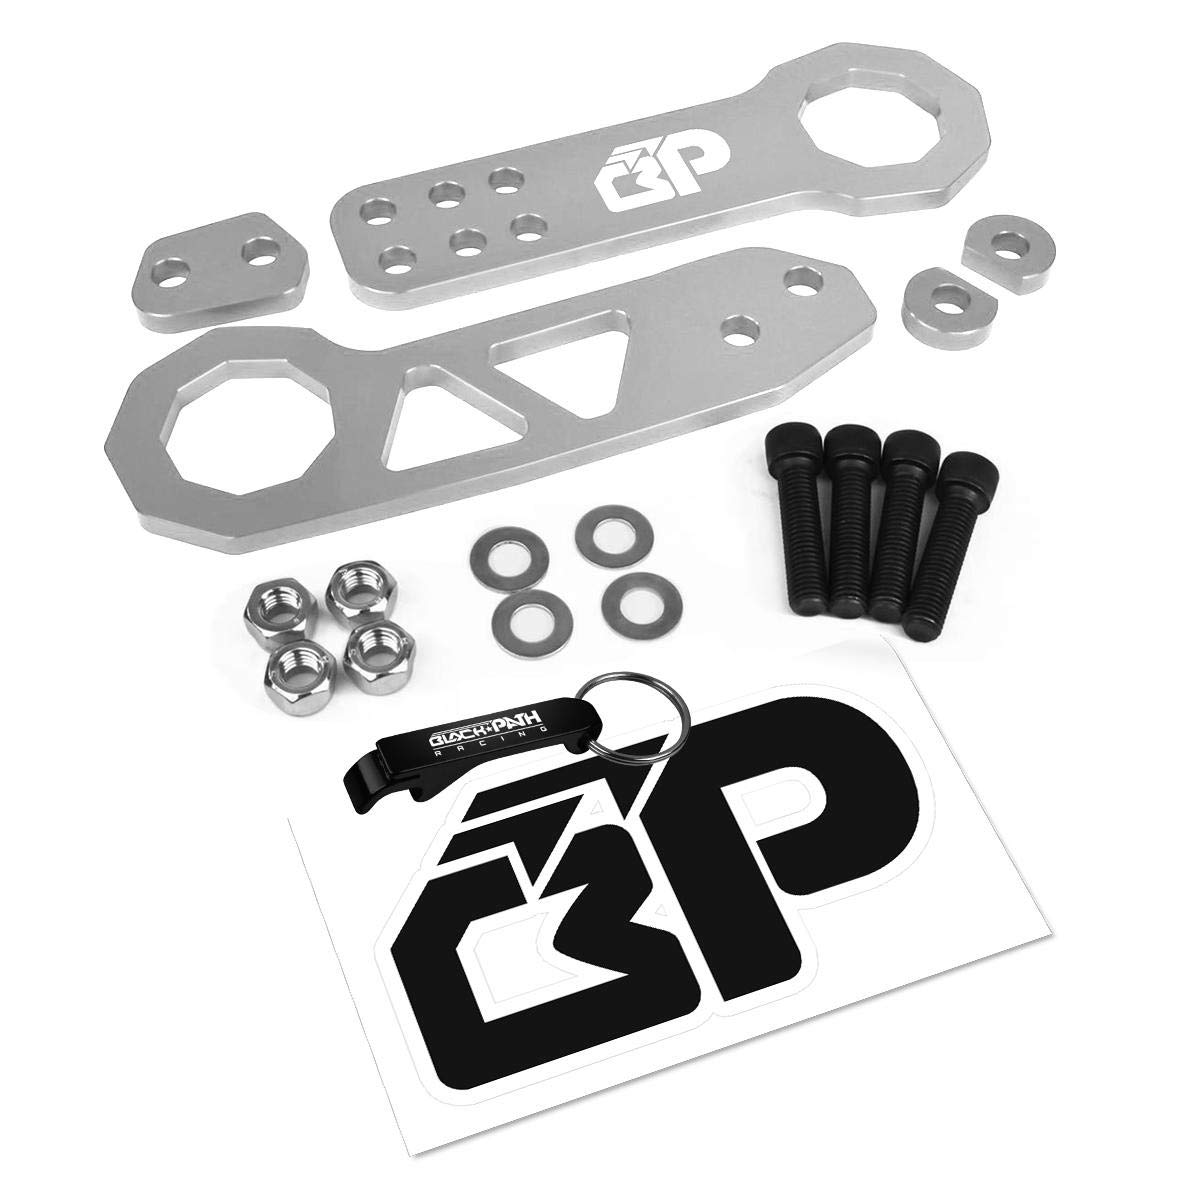 BlackPath - Honda + Acura Front and Rear JDM Racing Style Tow Hook Set (Silver) T6 Billet Black Path